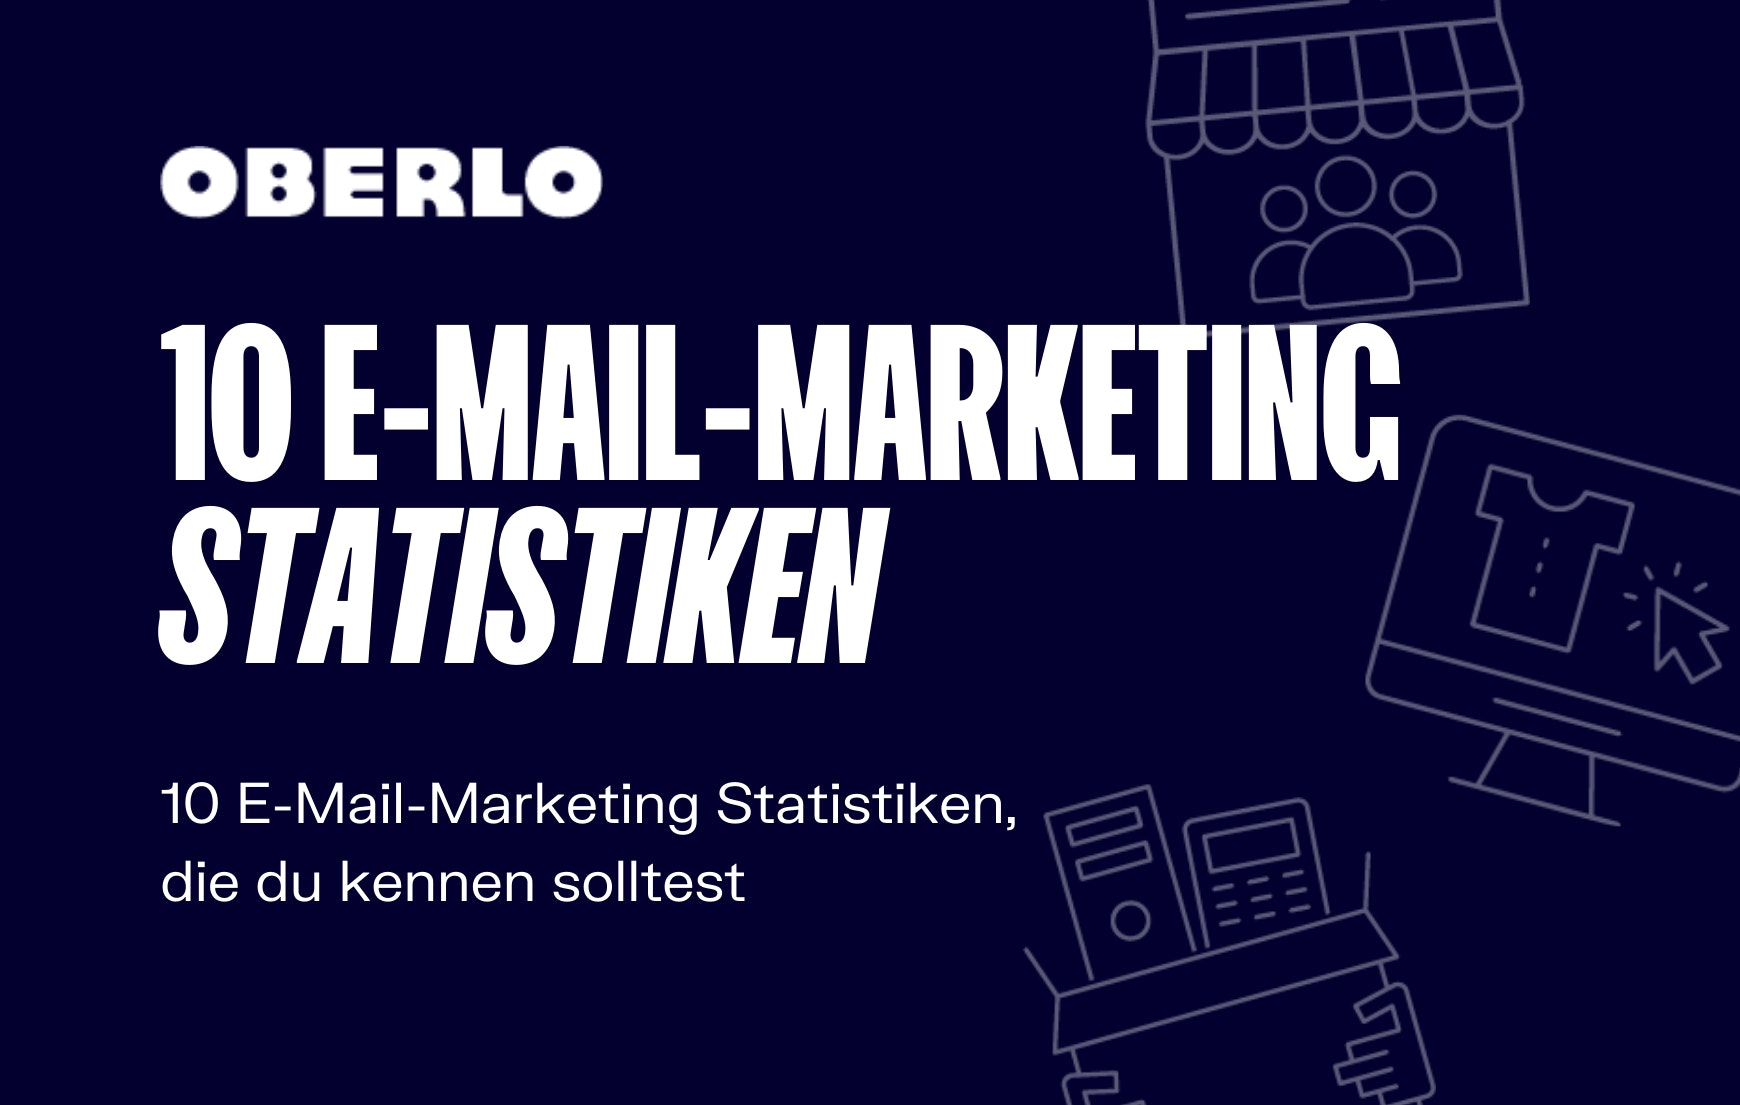 E-Mail-Marketing Statistics